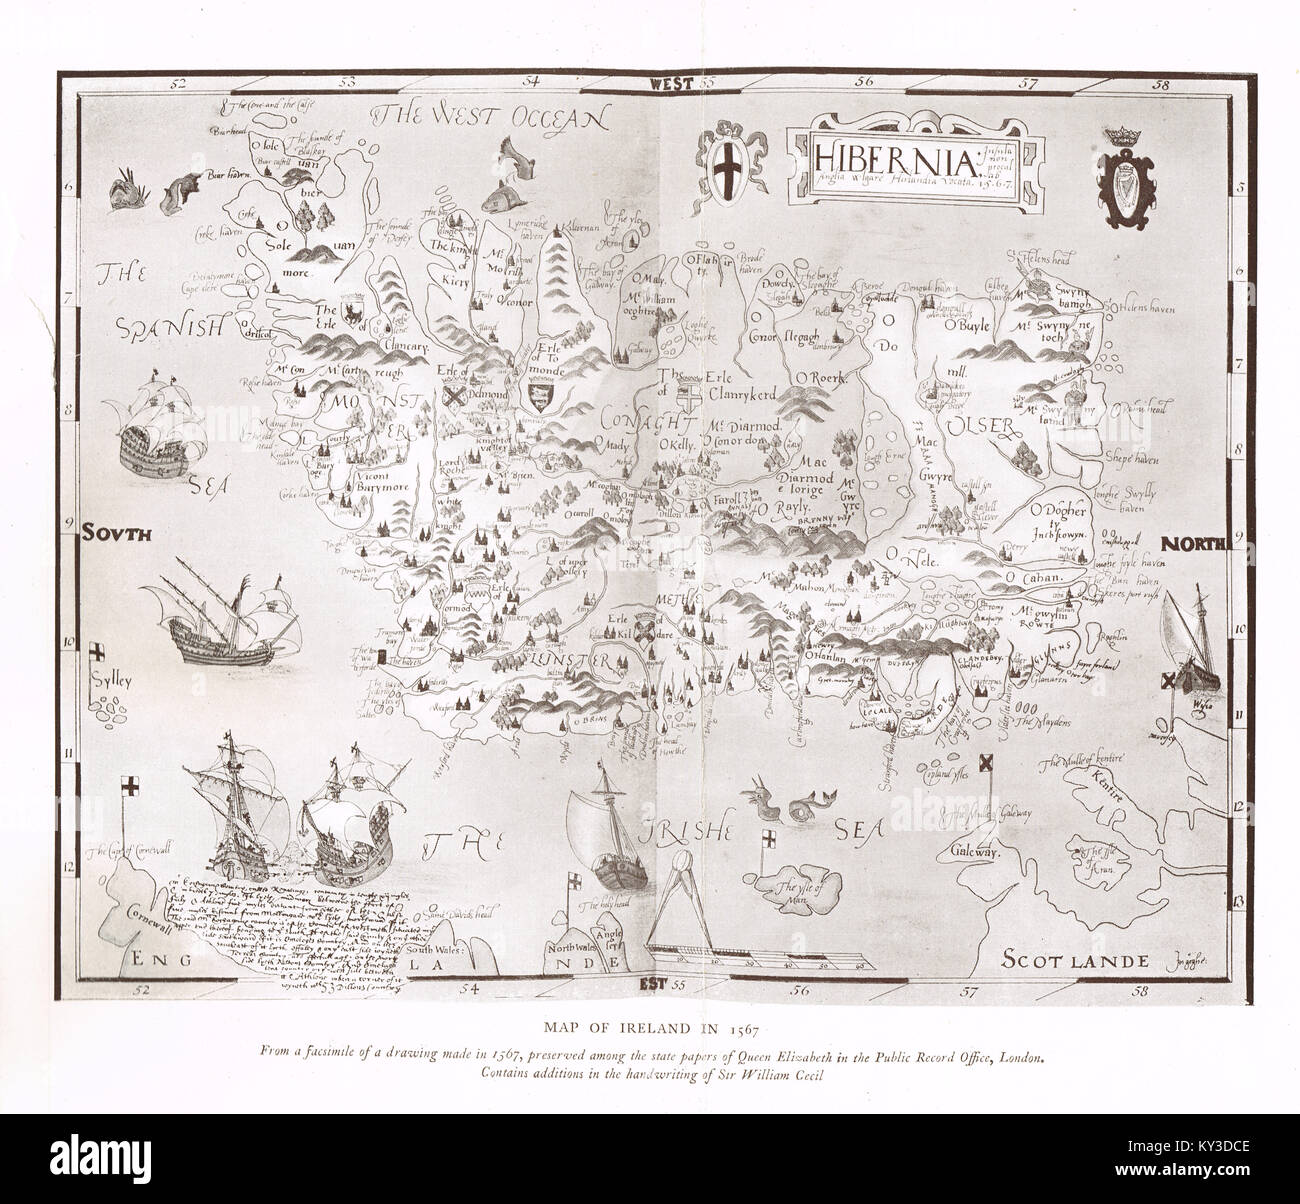 Illustrated Map of Ireland in 1567 - Stock Image